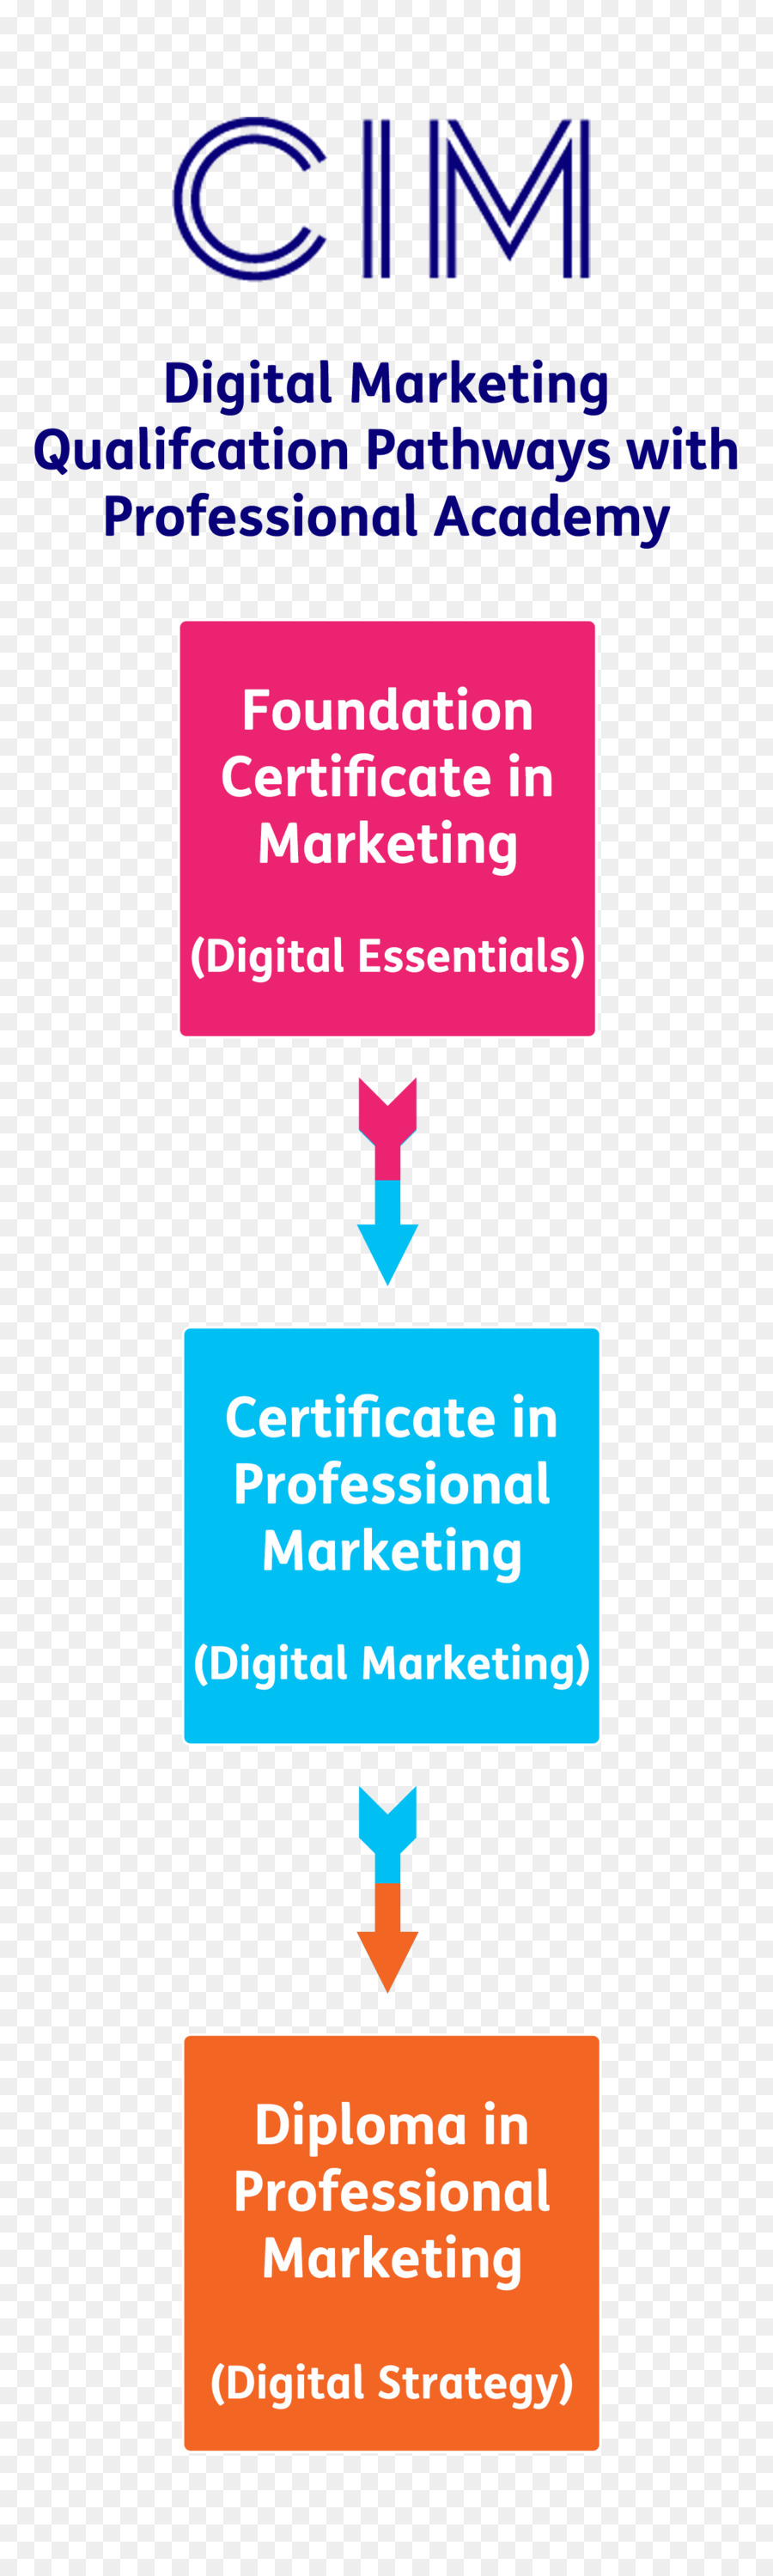 Chartered Institute Of Marketing Sales Diploma Professional